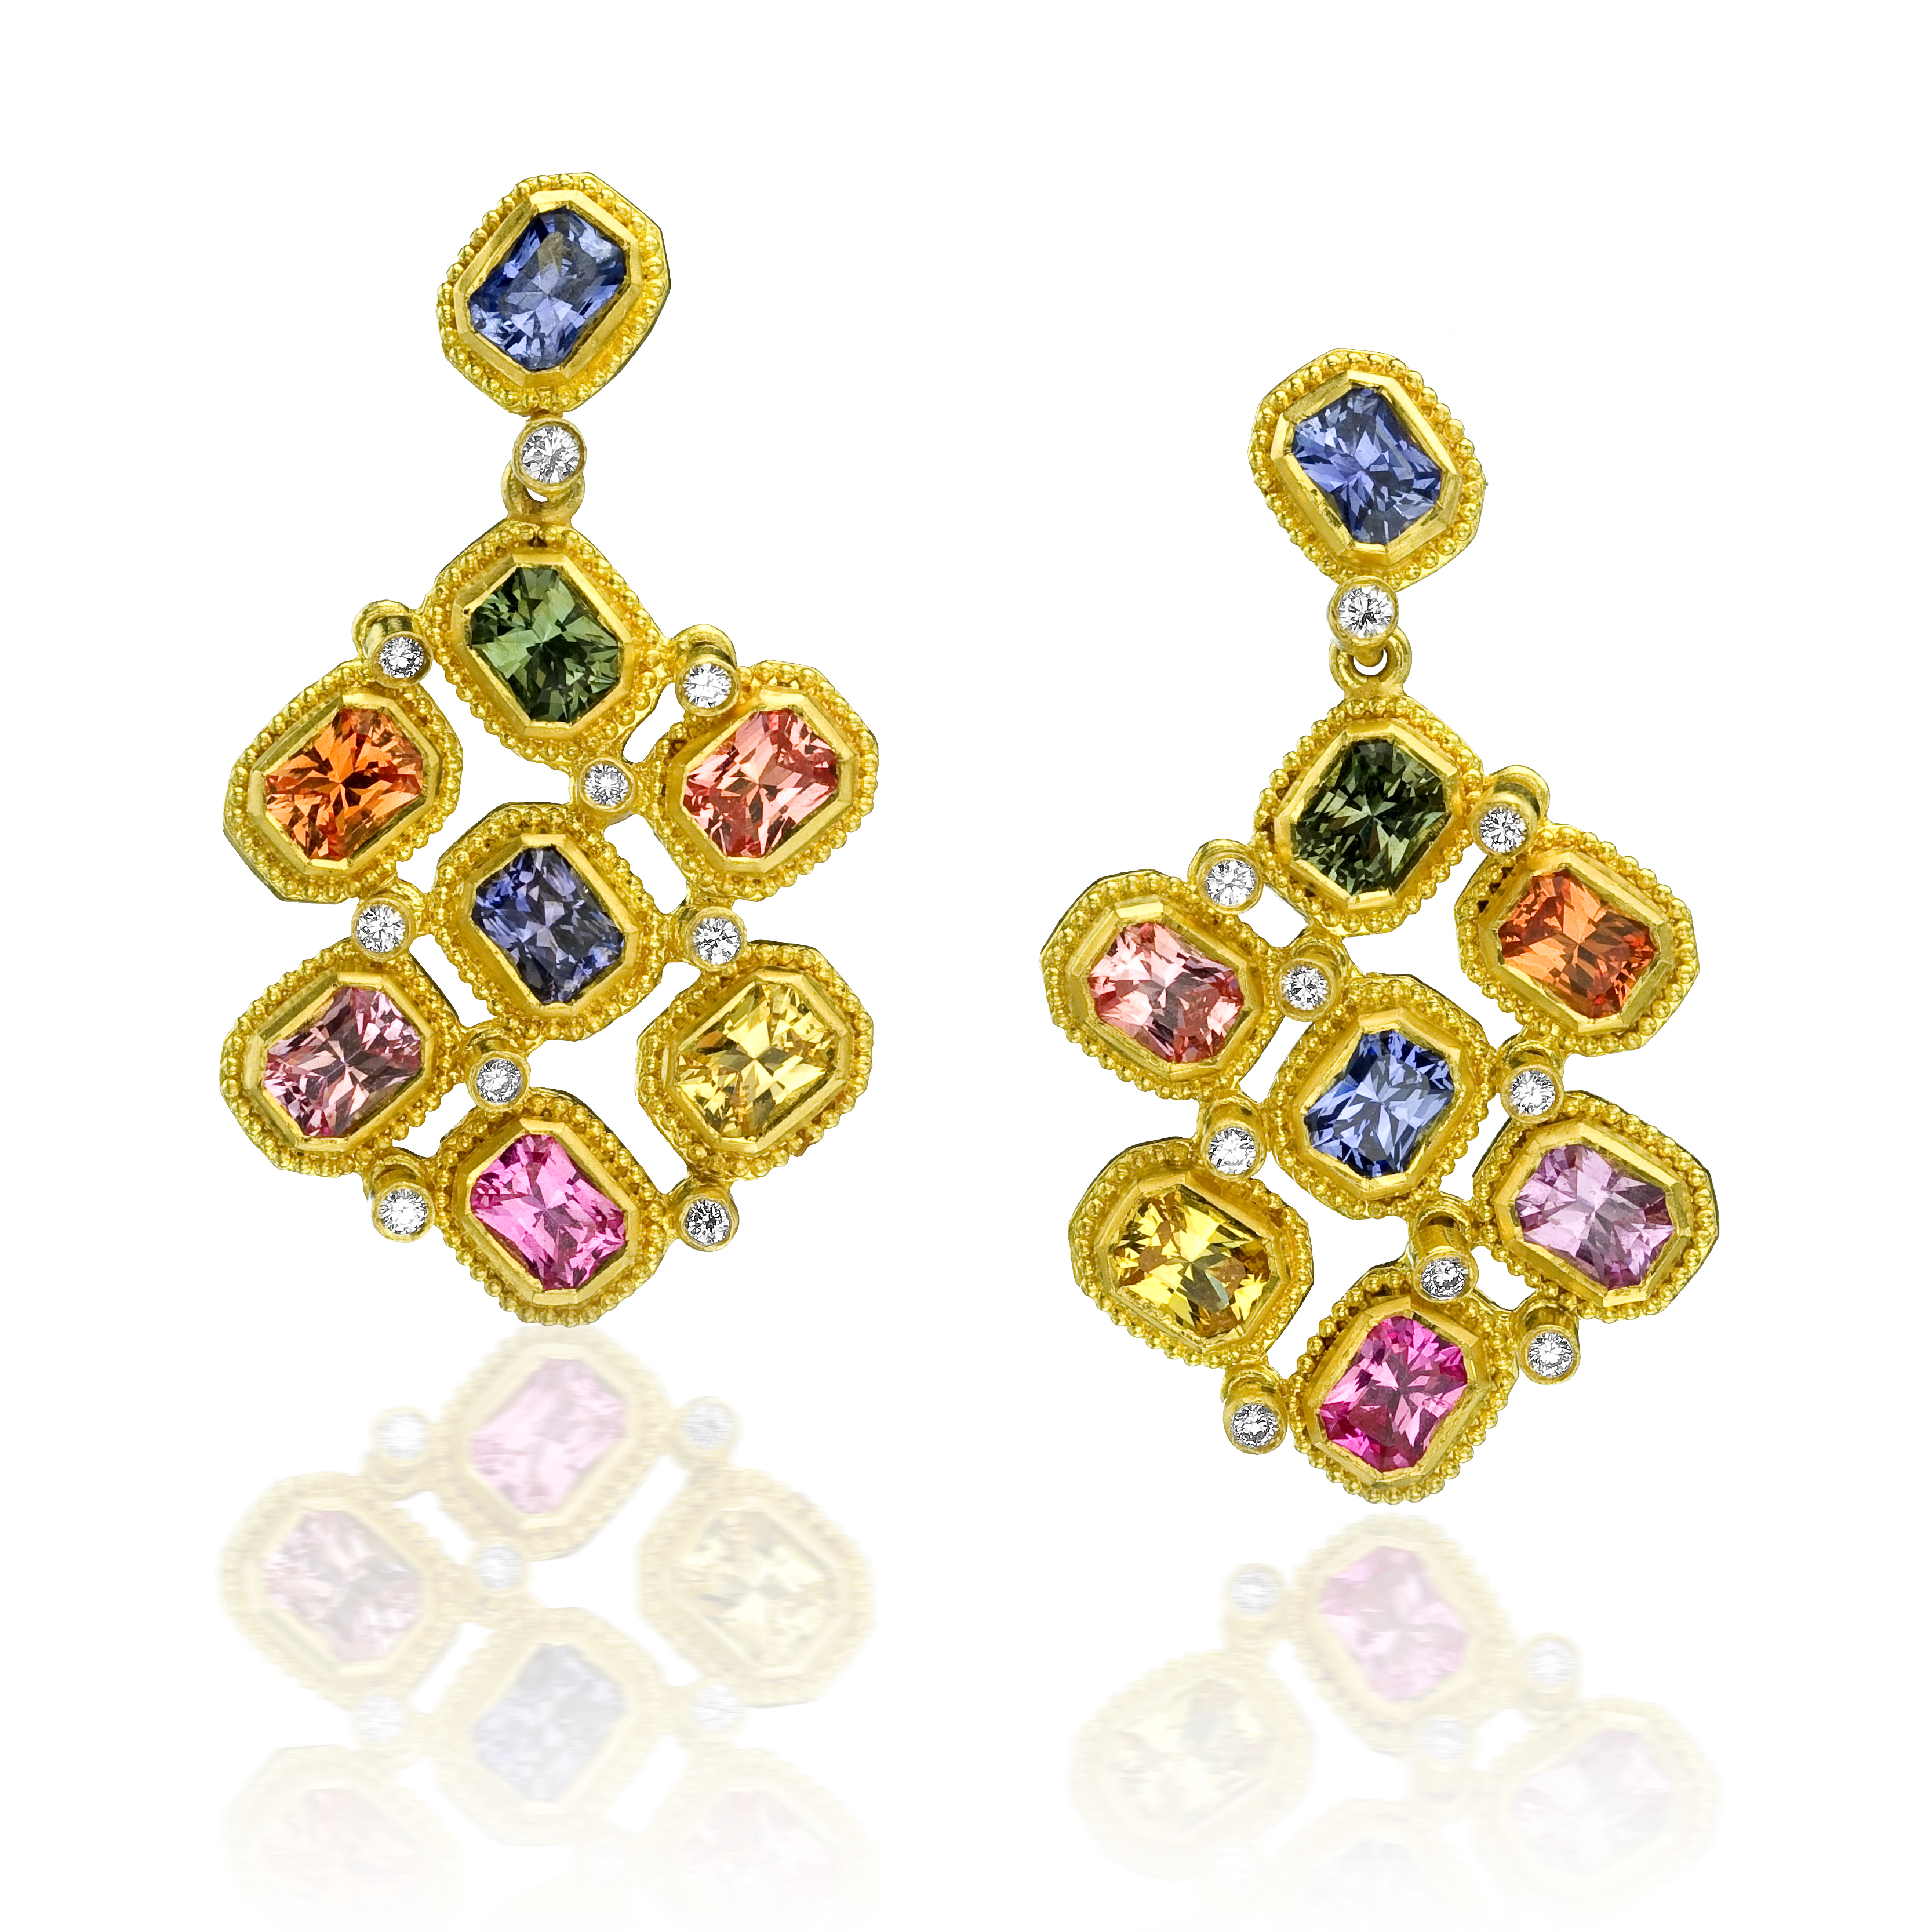 Latice Earrings with stones.jpg